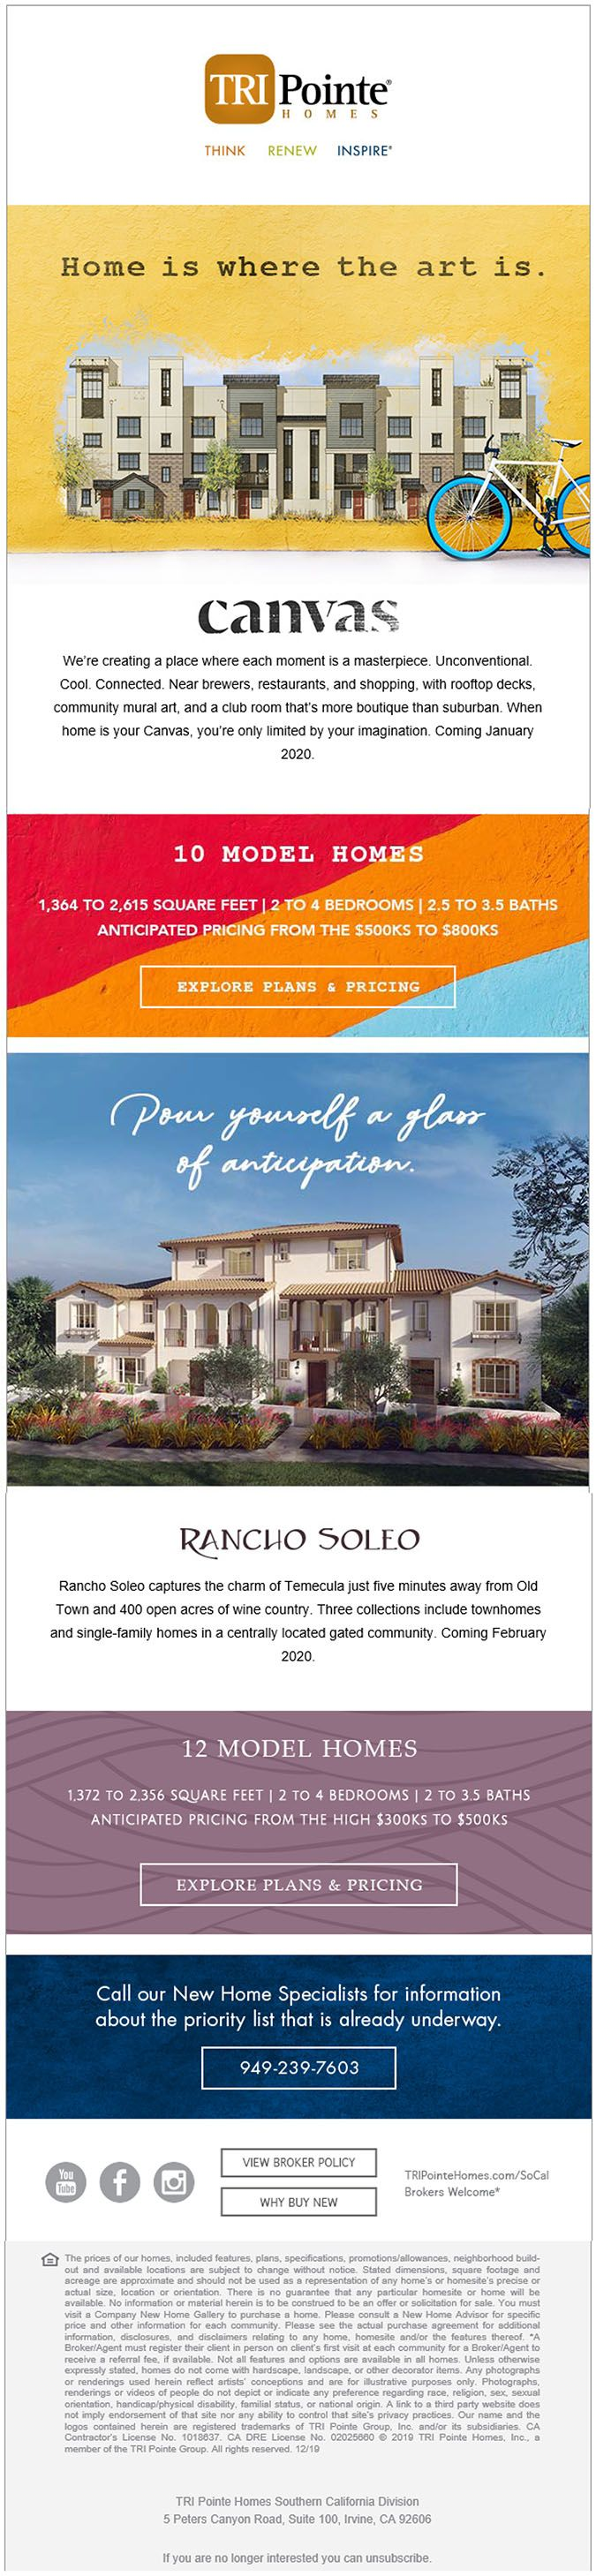 Find Your Homes In Southern California Tripointe Homes Model Homes New Community Temecula